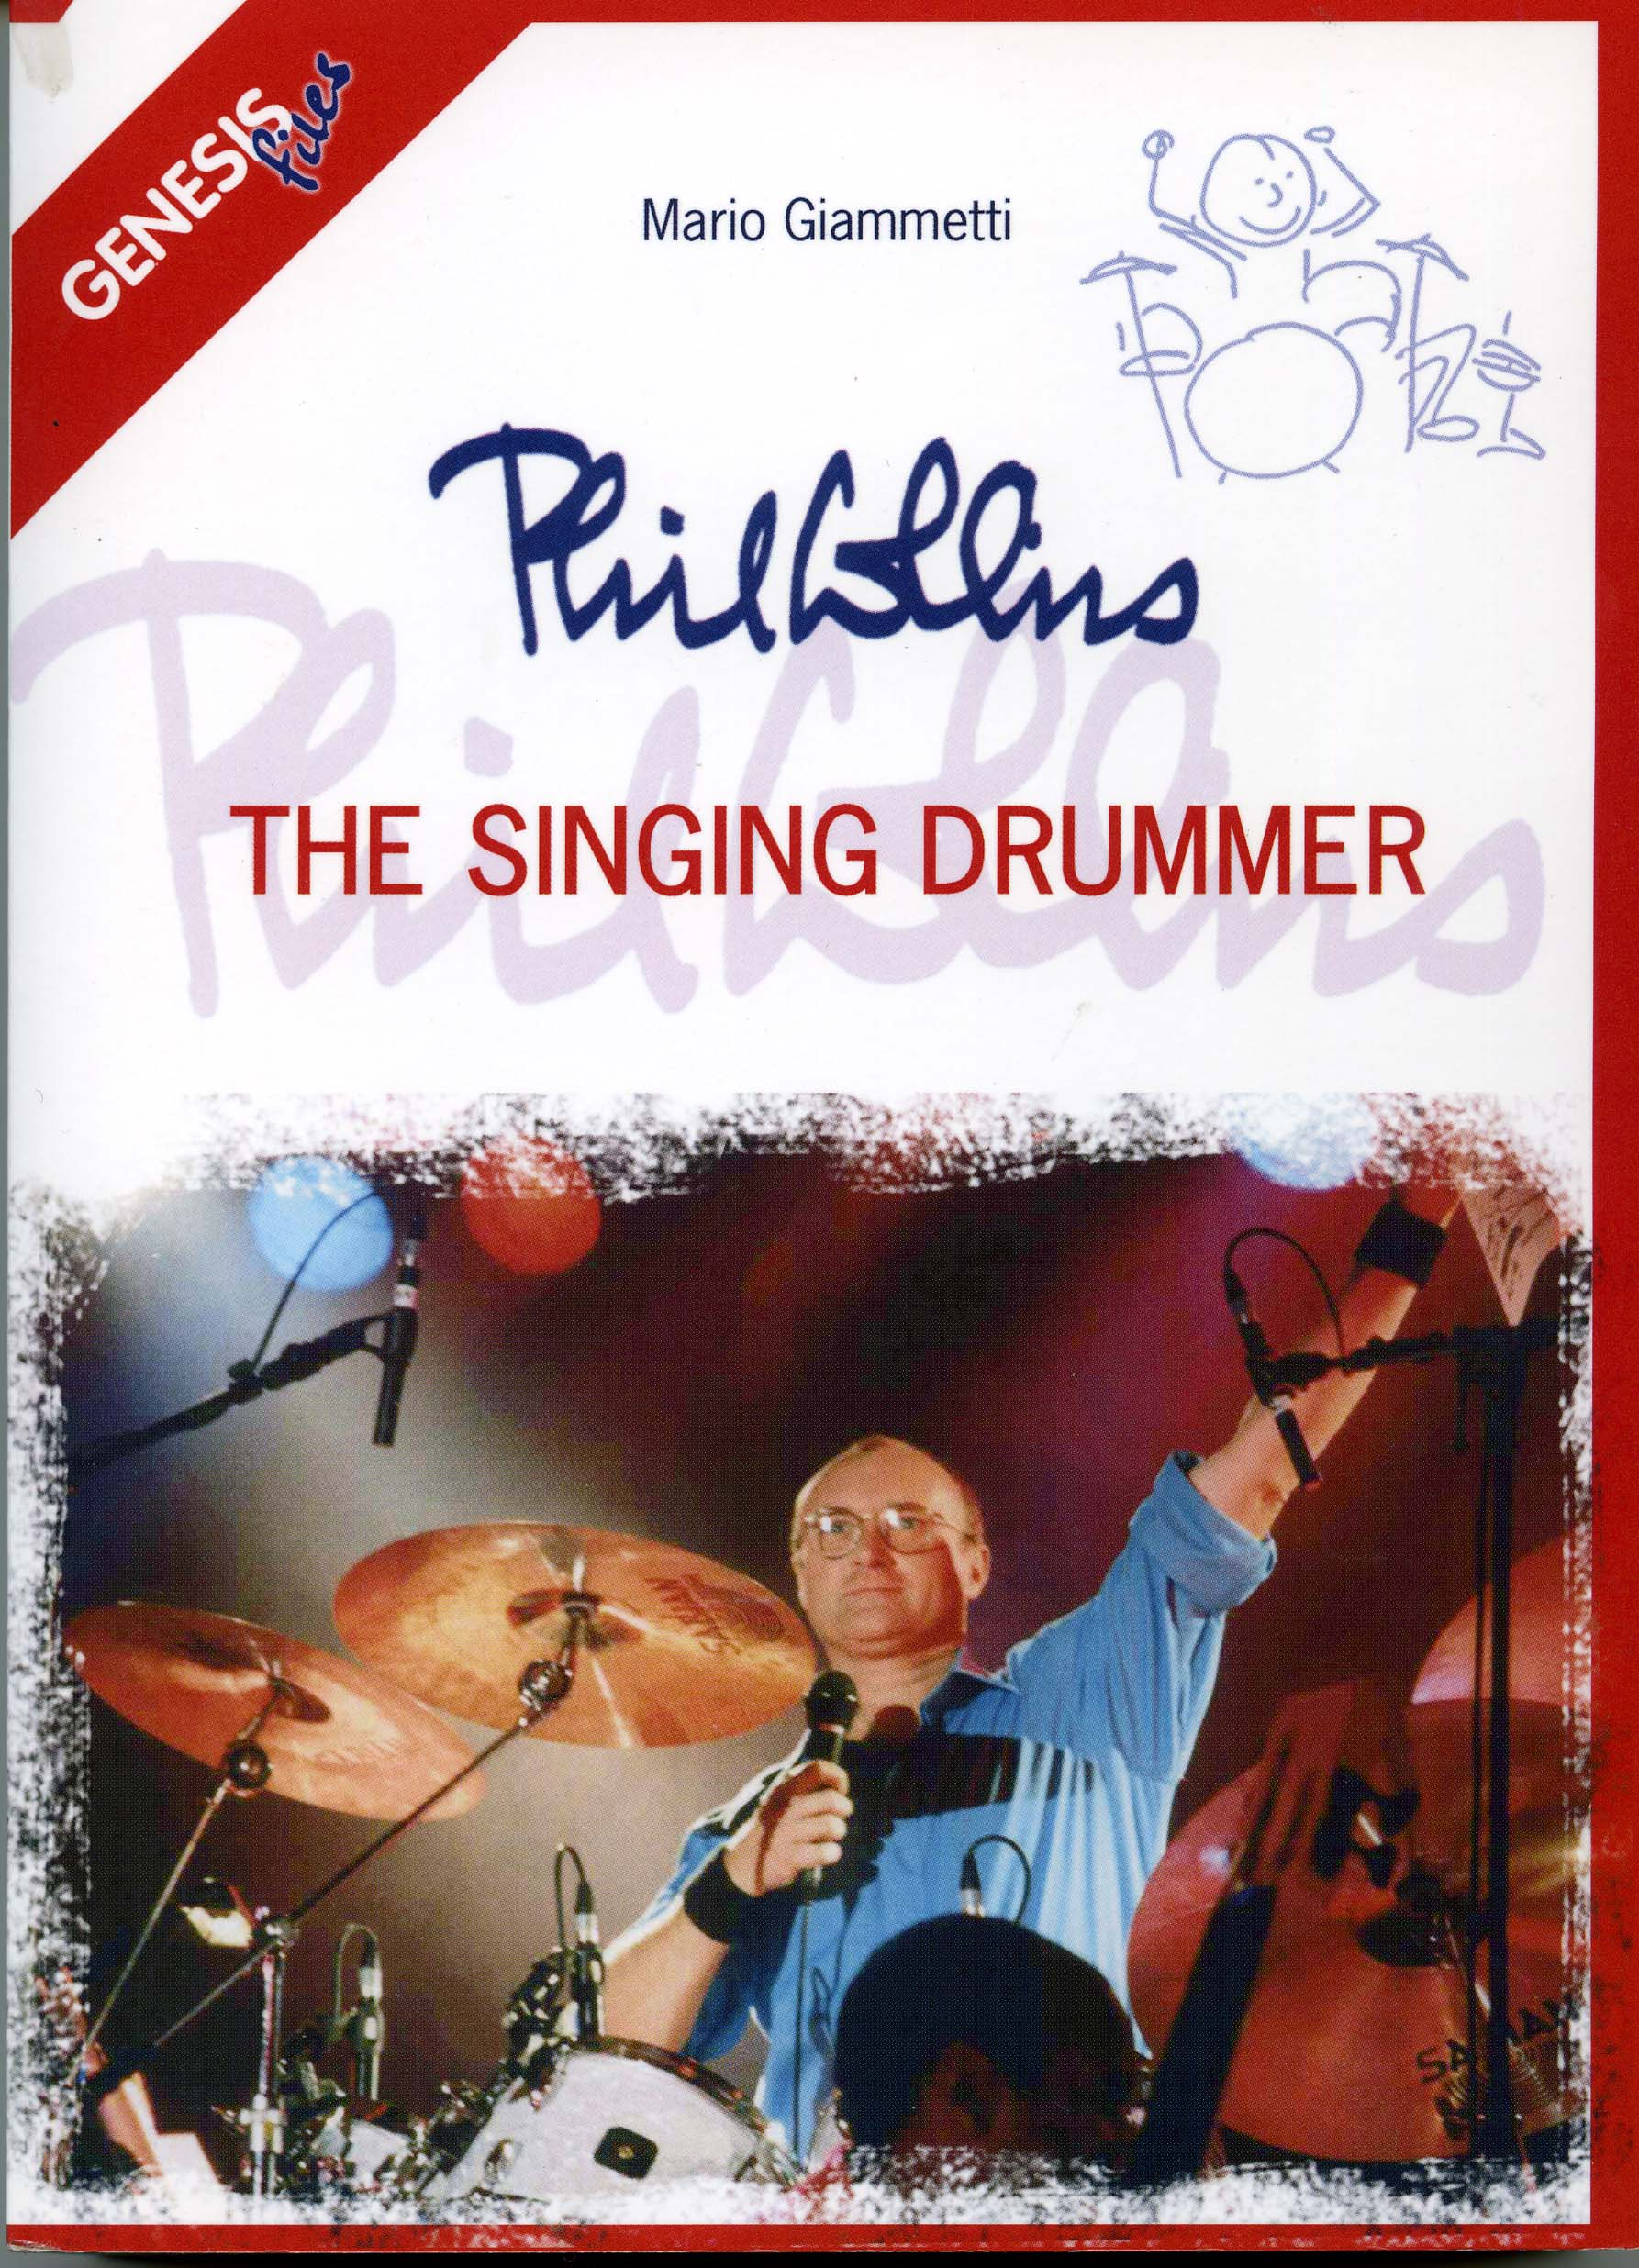 The Singing Drummer